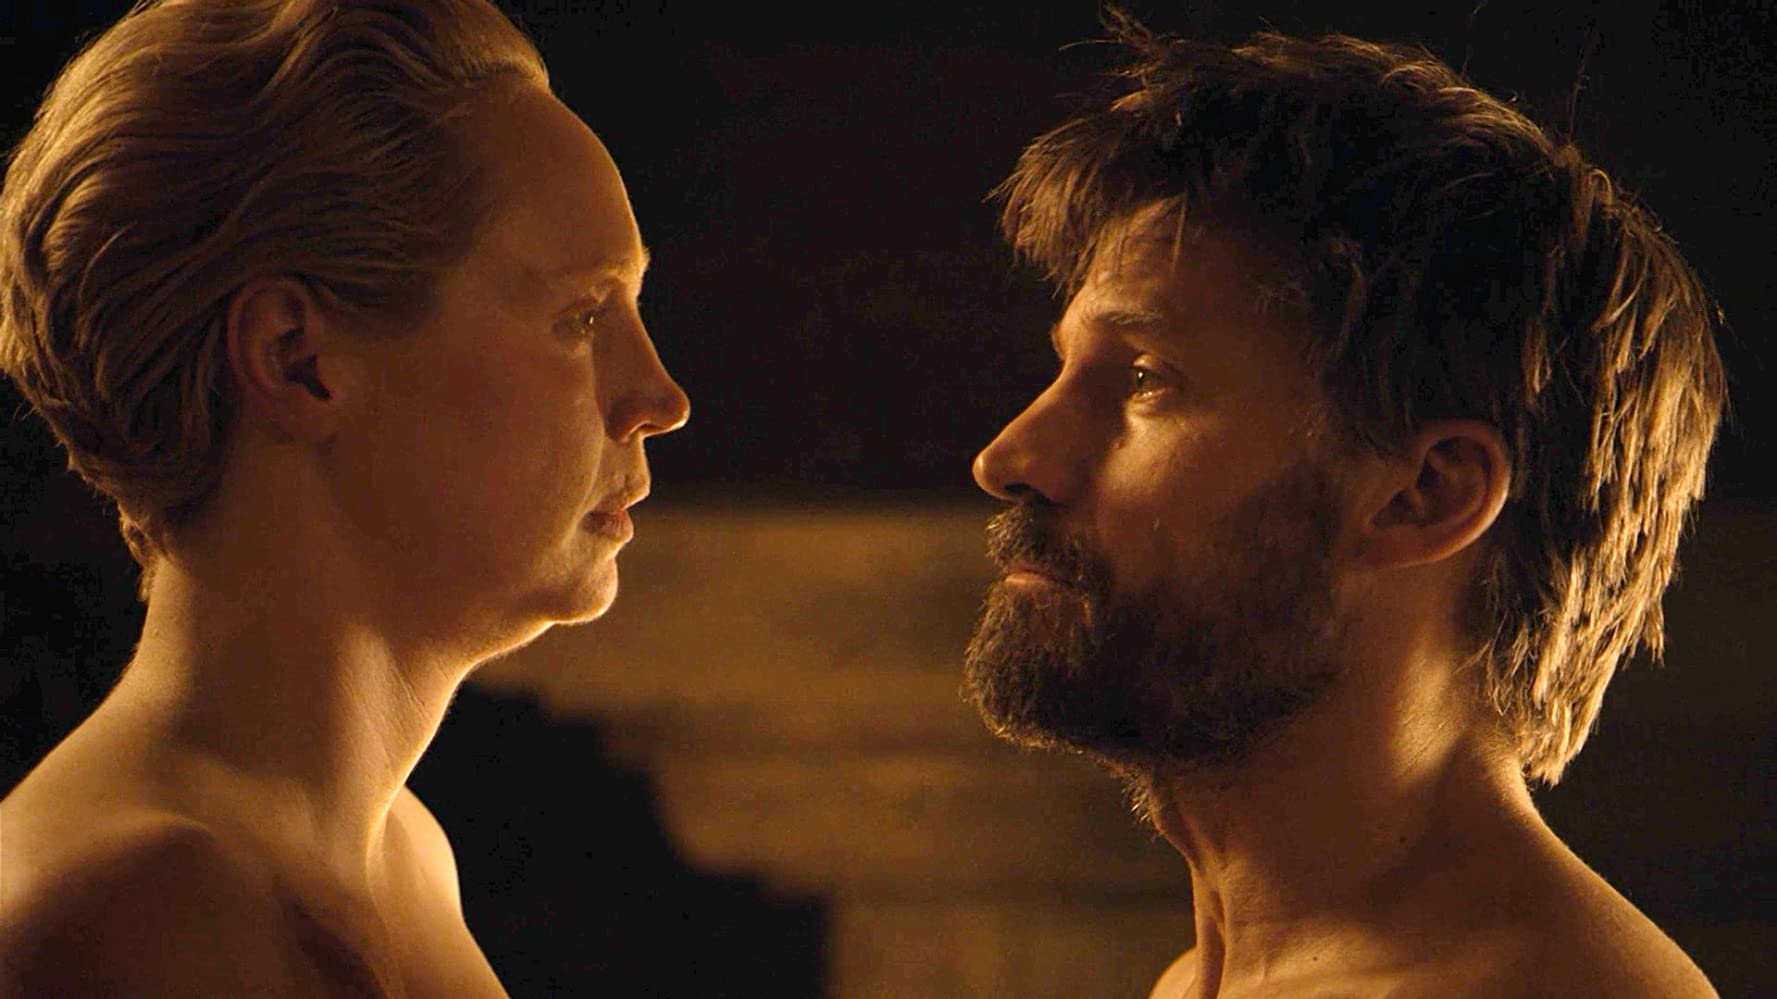 Nikolaj Coster-Waldau and Gwendoline Christie in Game of Thrones (2011)